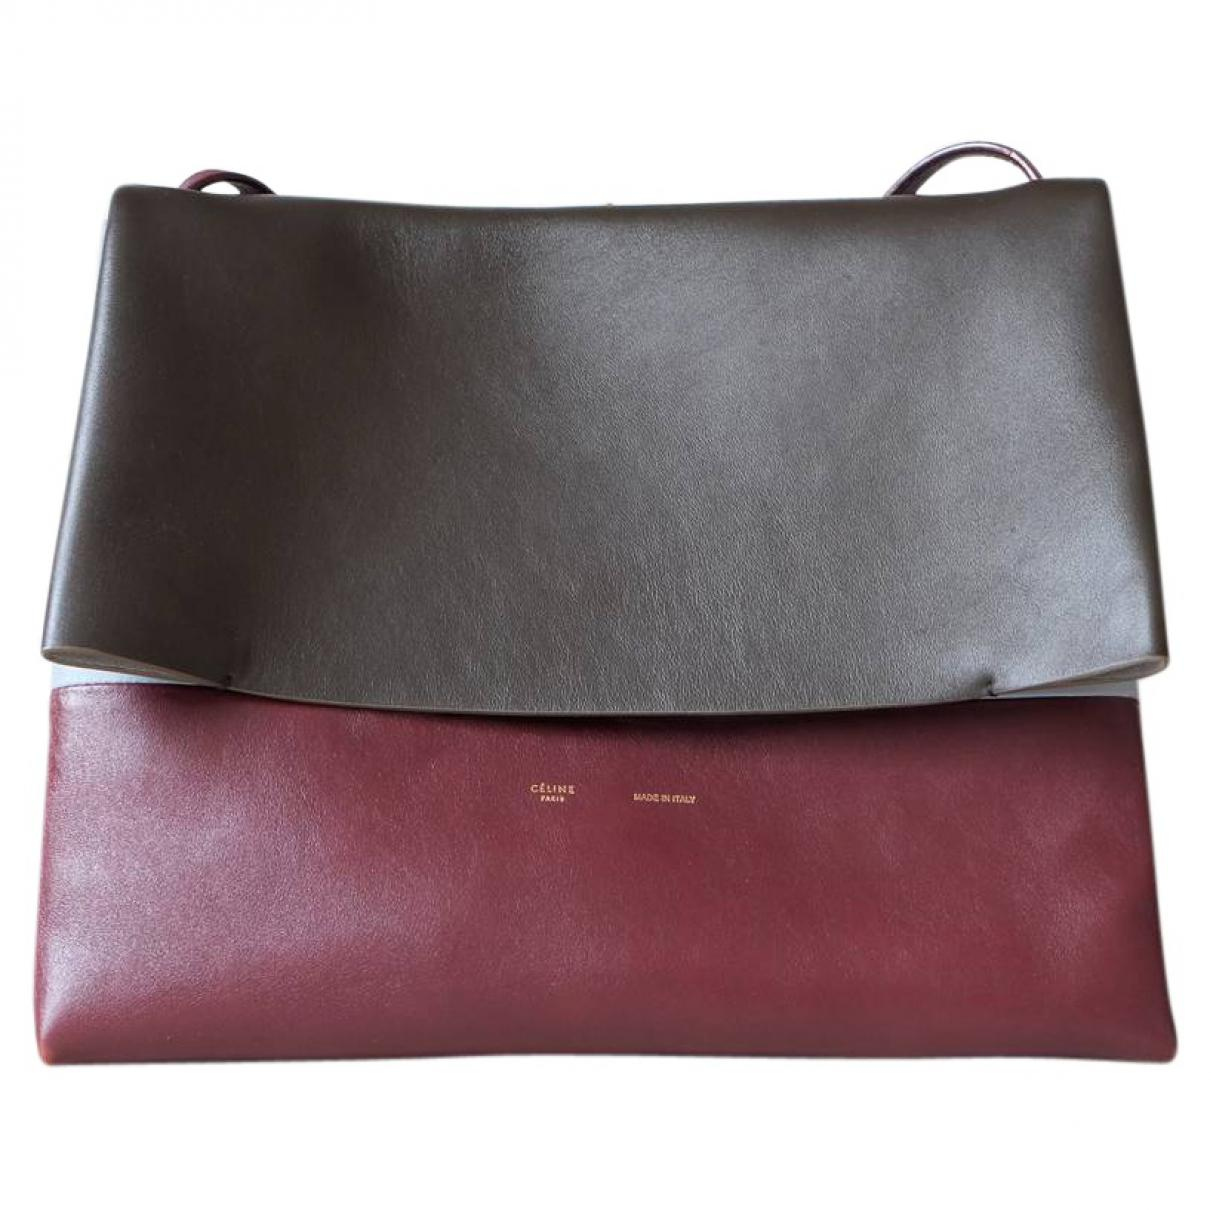 6951d74a4f Lyst - Céline Pre-owned All Soft Leather Handbag in Purple